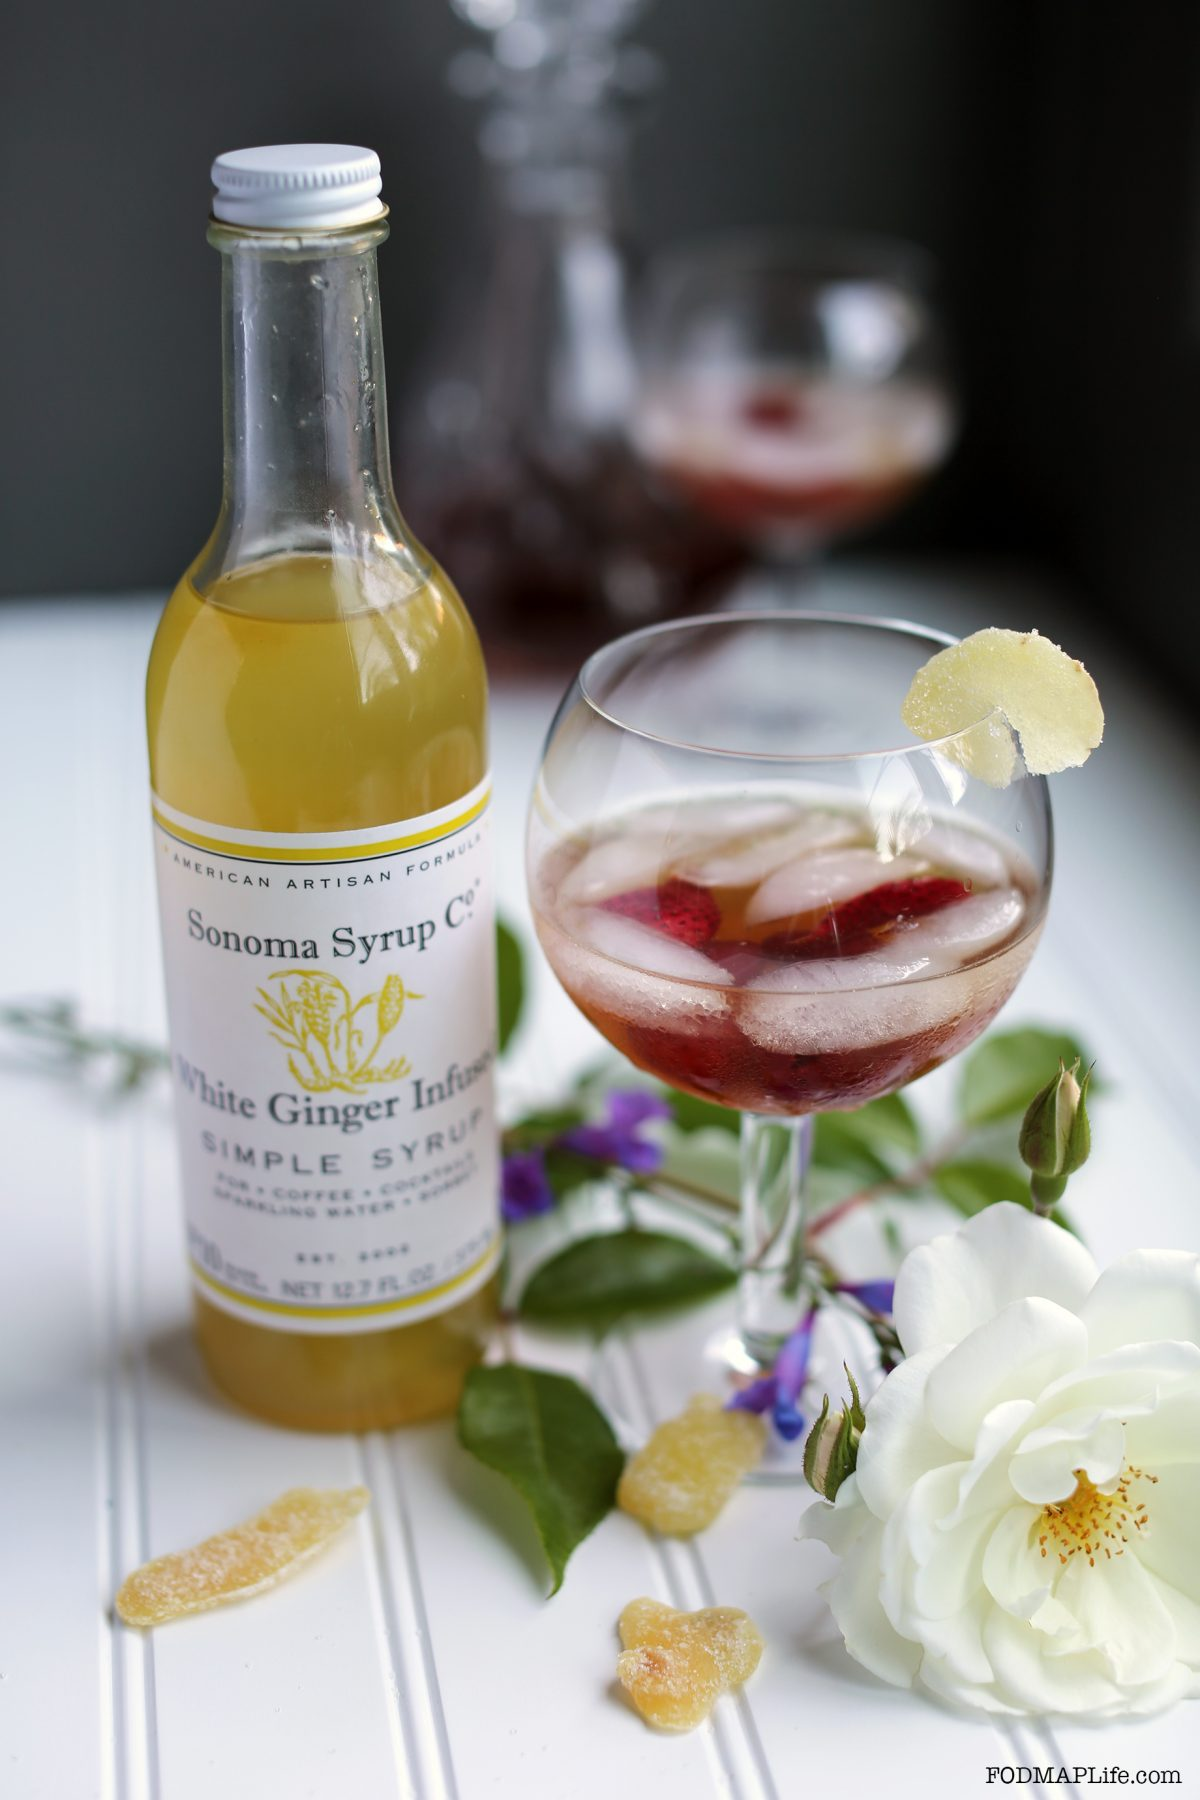 Make a Low-FODMAP Shrub with Sonoma Syrup Co.